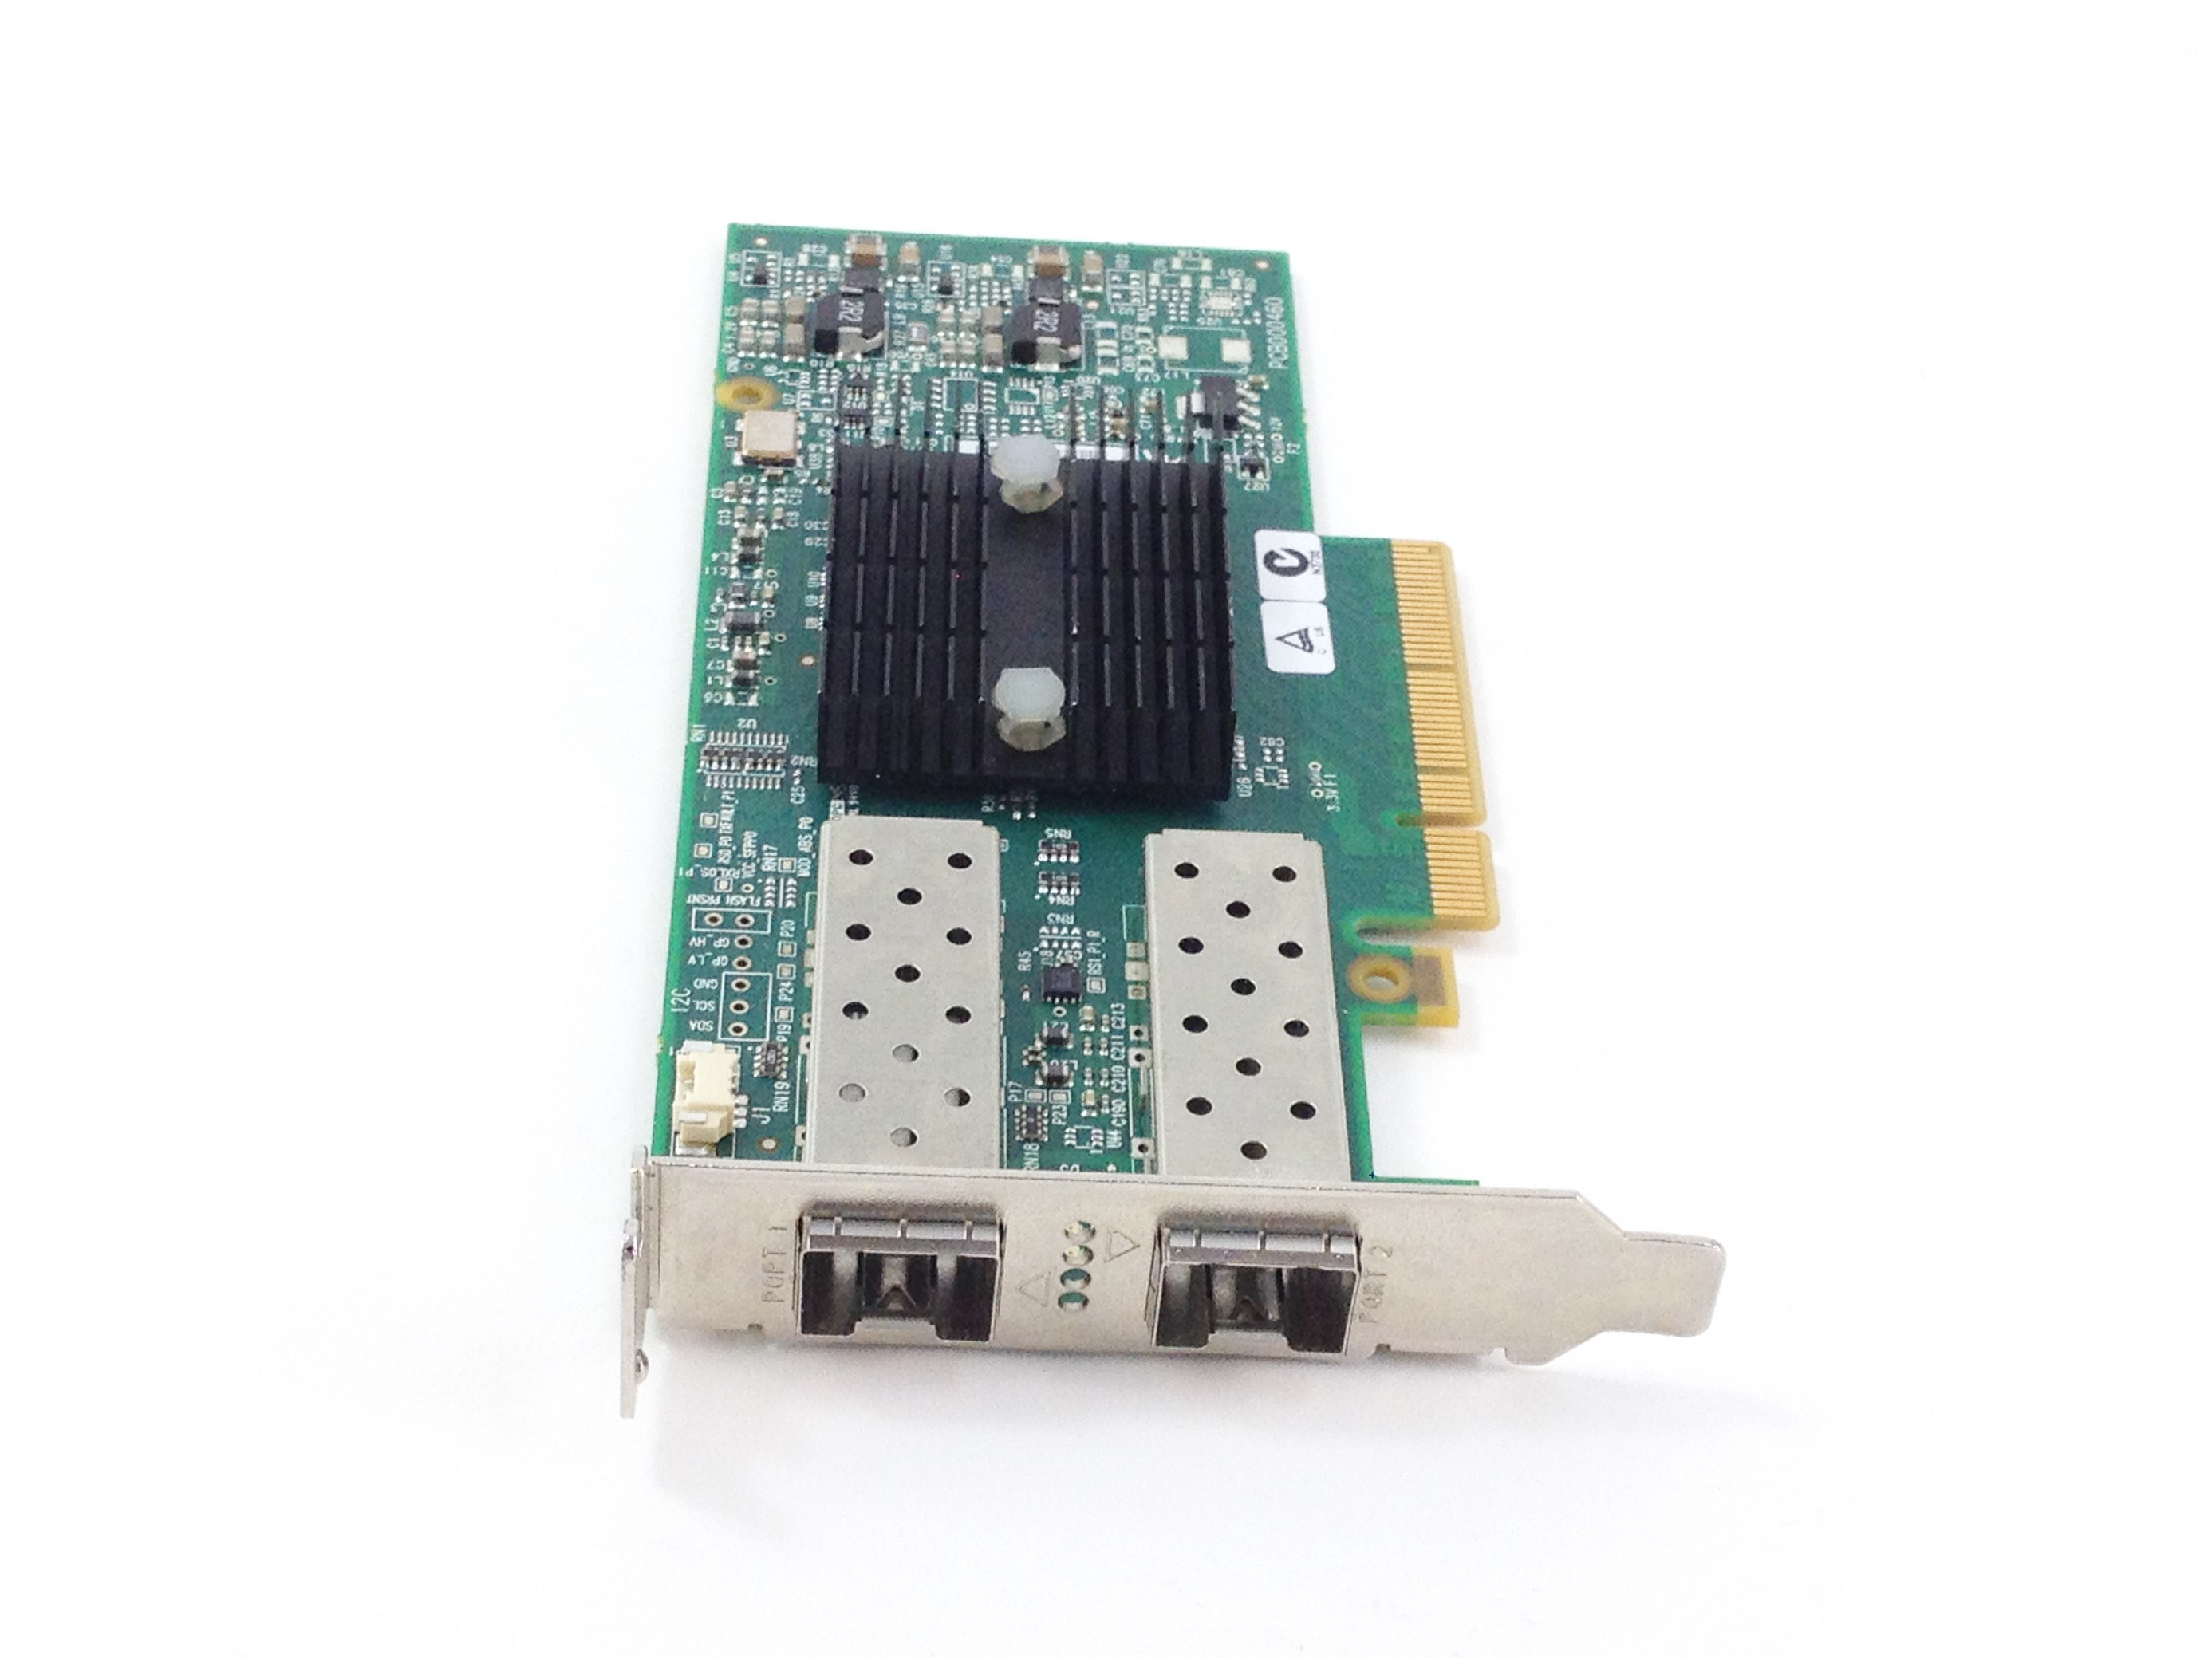 Mellanox Connectx-3 CX312A 2x 10GbE SFP+ Dual Port PCIe NIC (CX312A)